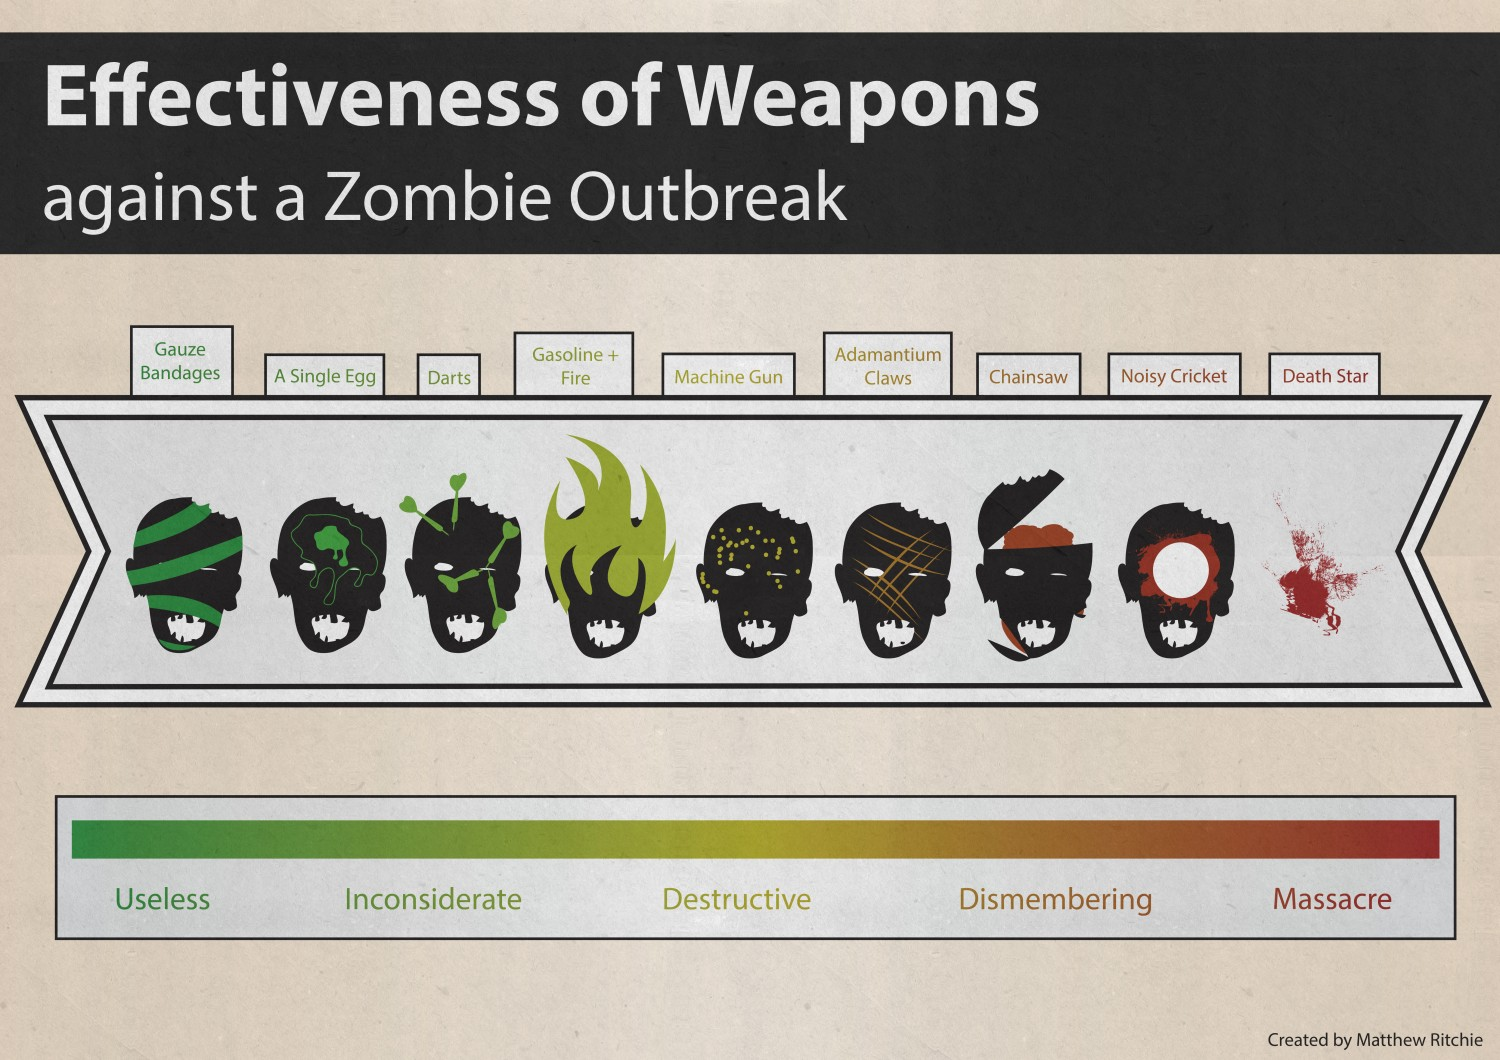 effectiveness-of-weapons-against-a-zombie-outbreak_5180ed65cfeb6_w1500